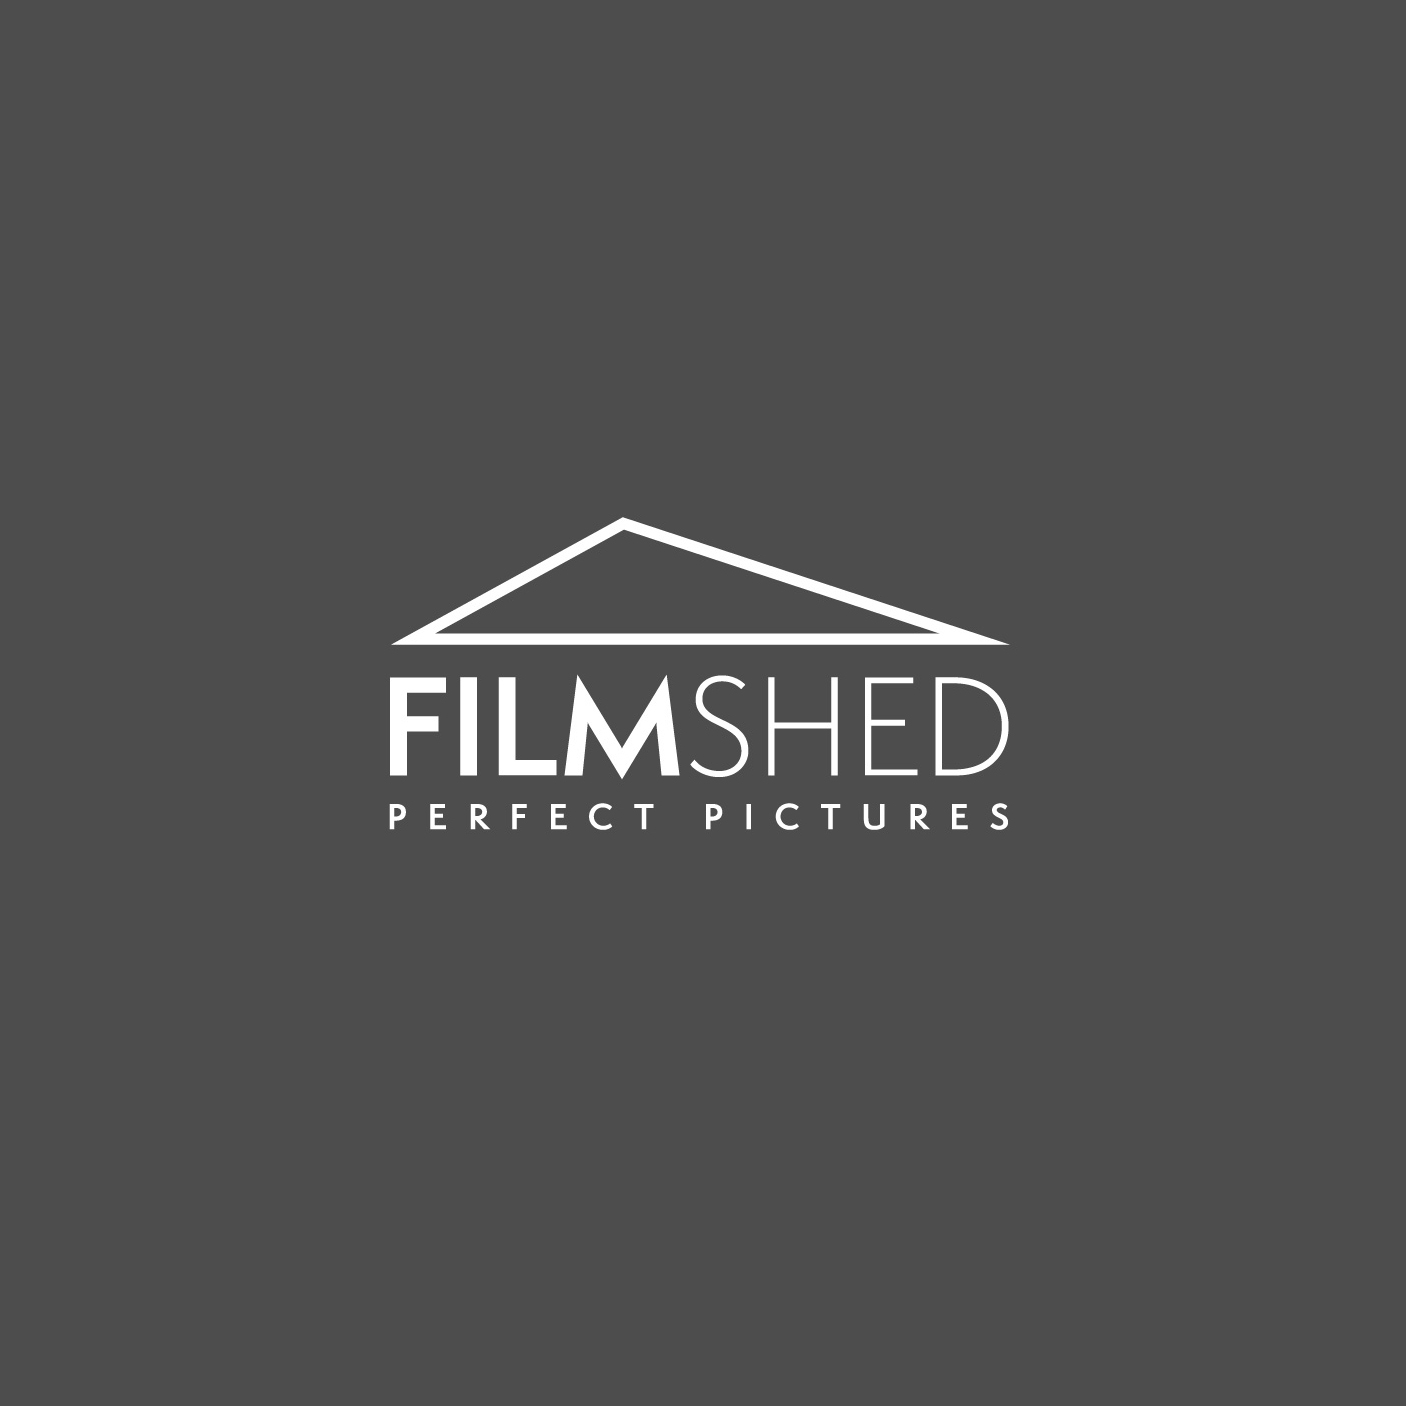 Developed Concepts v2 - Filmshed